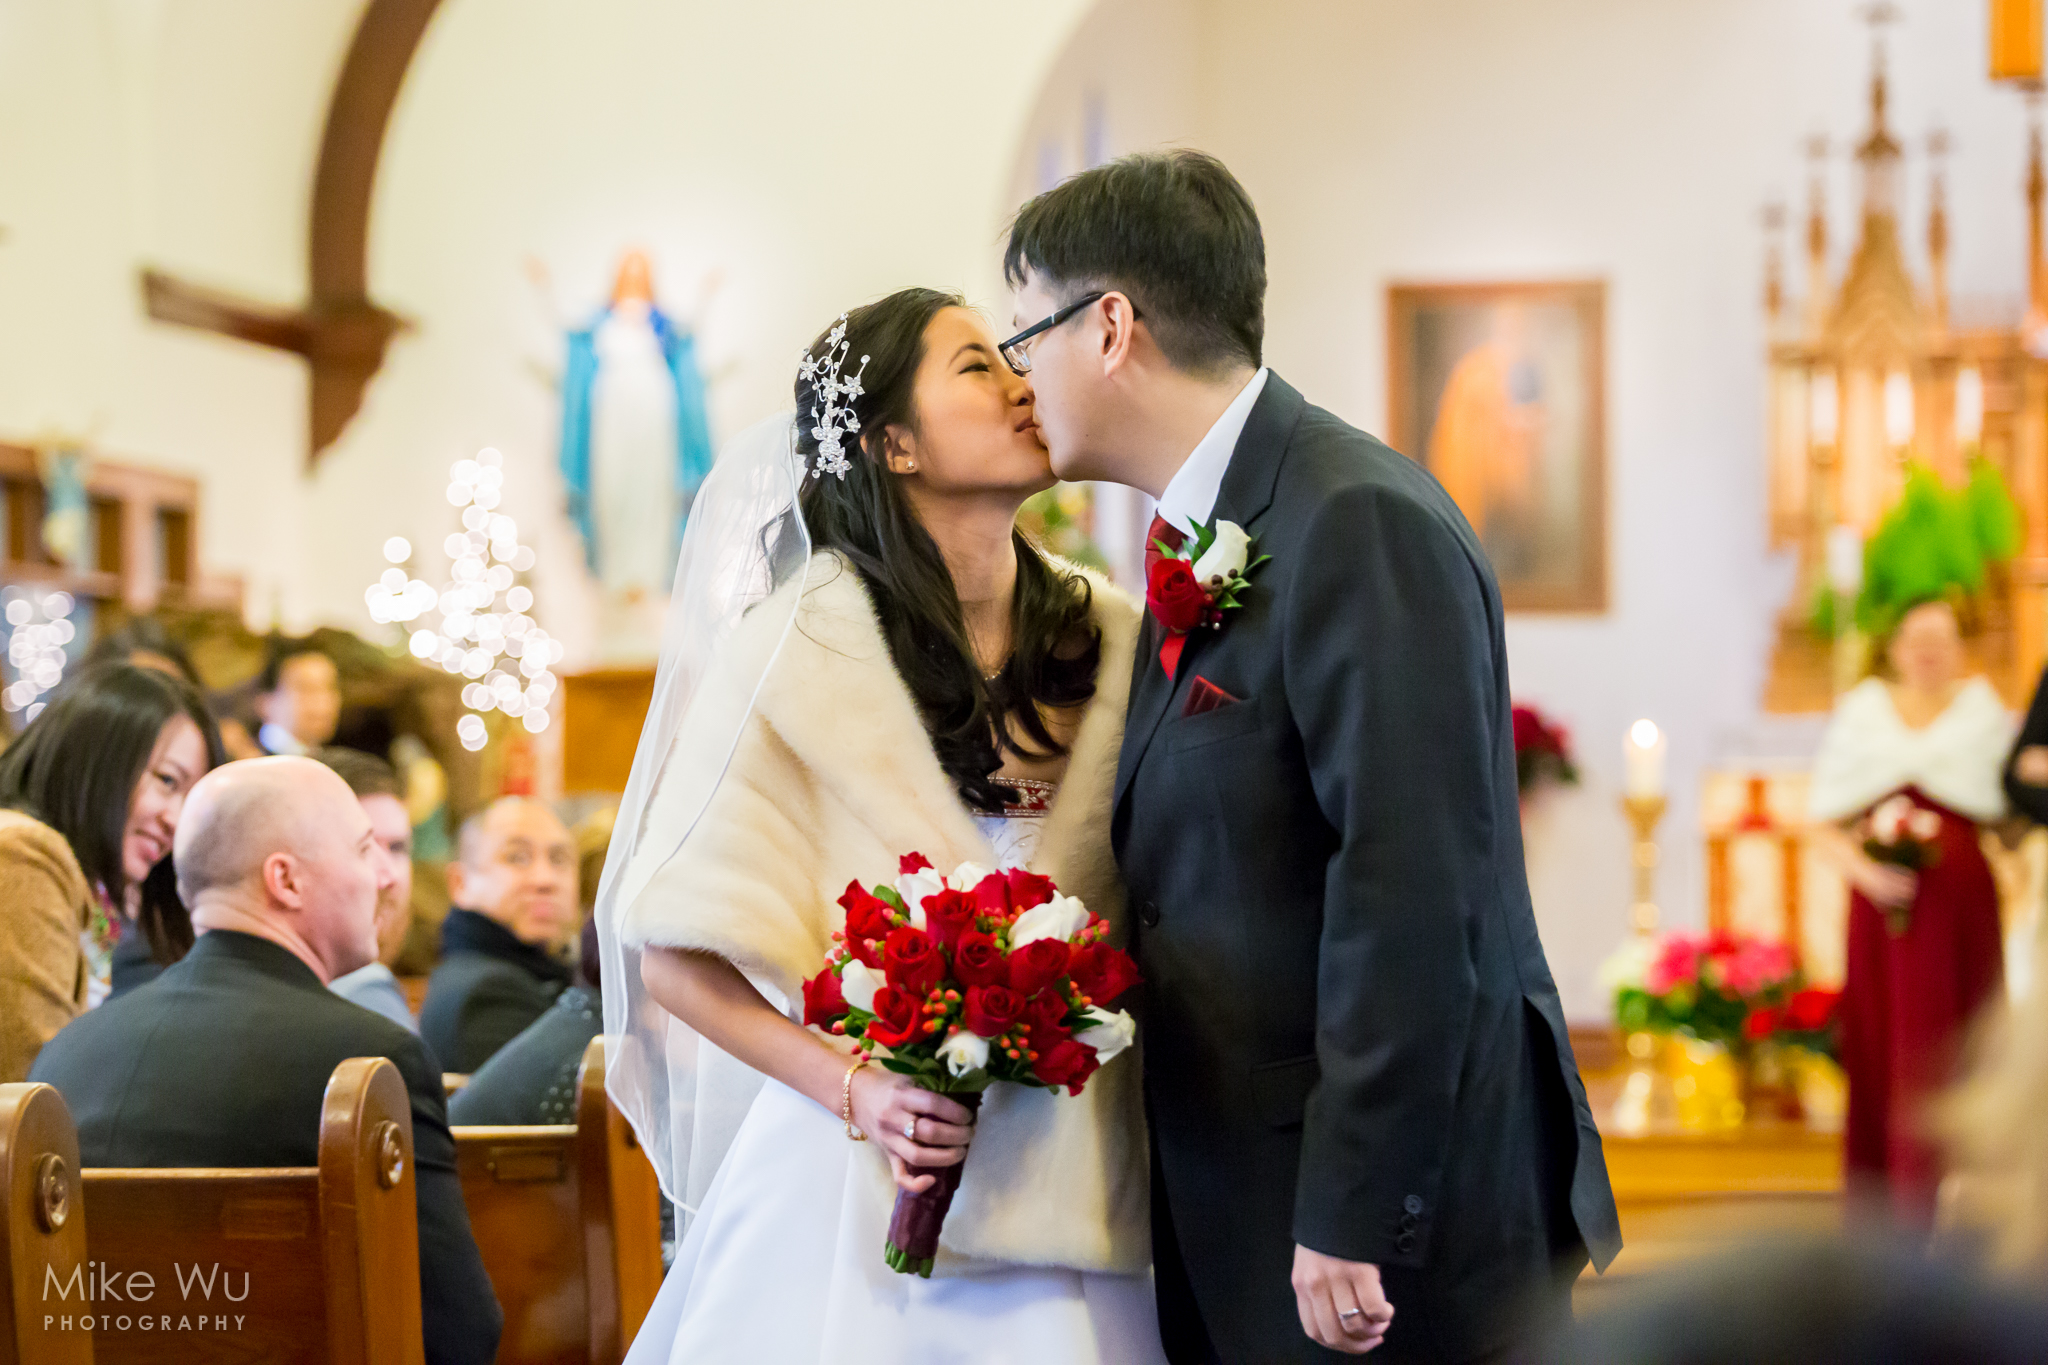 viel, fur, wedding dress, christmas wedding, bouquet, first kiss, love, vancouver, photographer, lights, crowd, attention, church, pews, indoors, winter